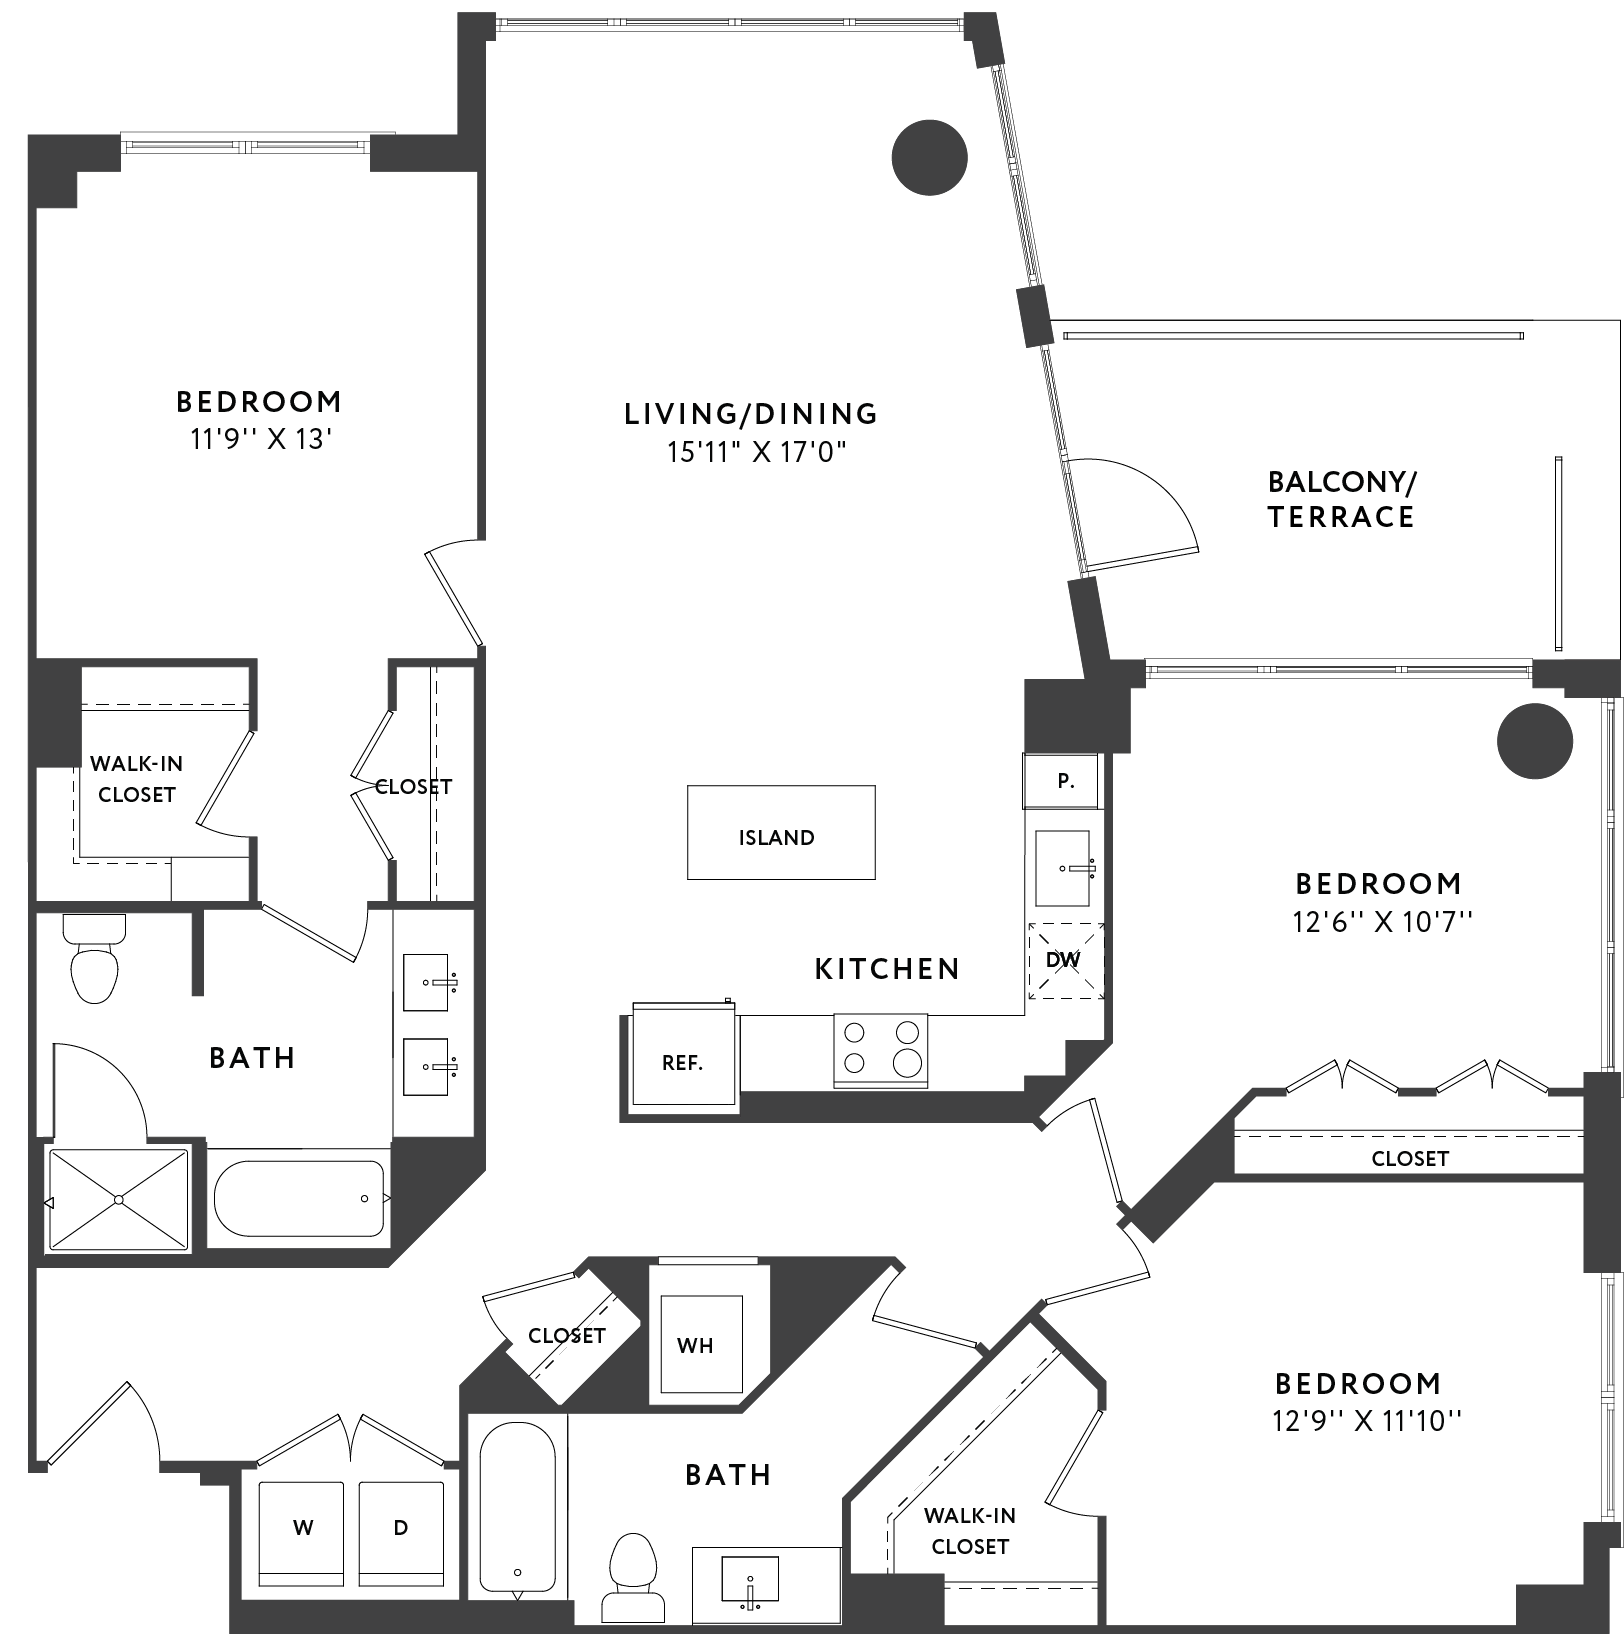 3 Bedroom  346 plan